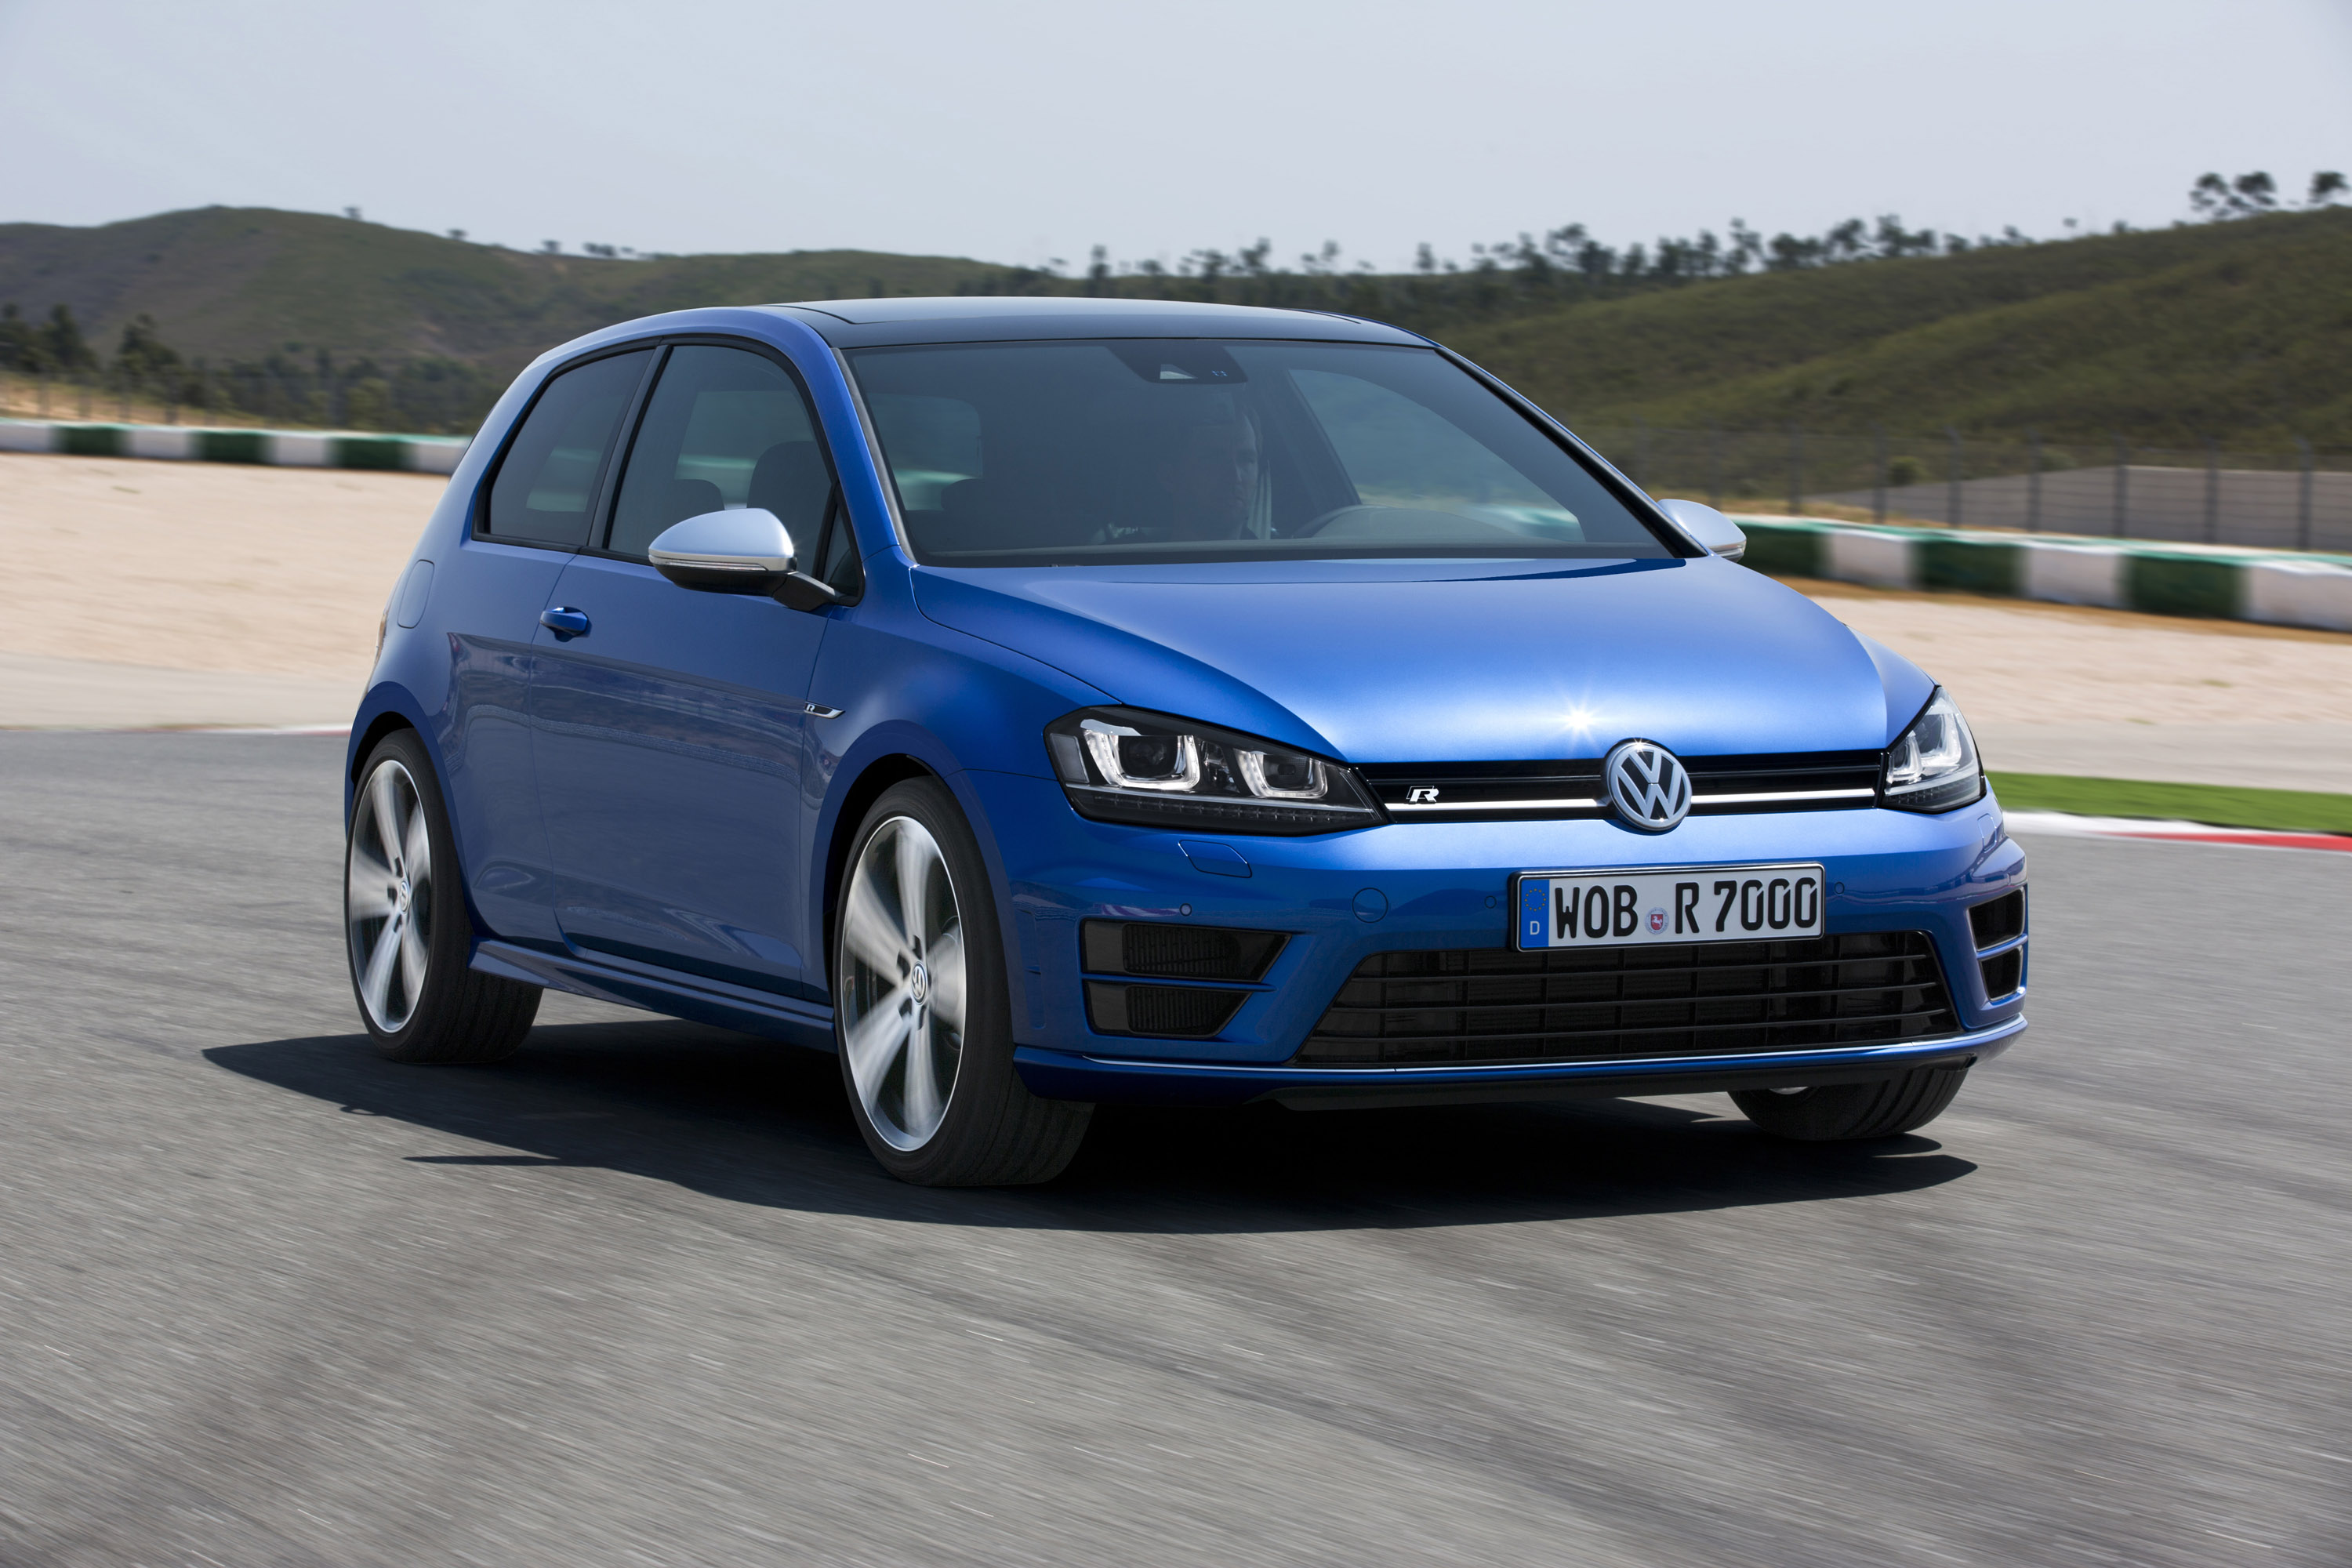 2014 volkswagen golf vii r 300hp and 380nm. Black Bedroom Furniture Sets. Home Design Ideas